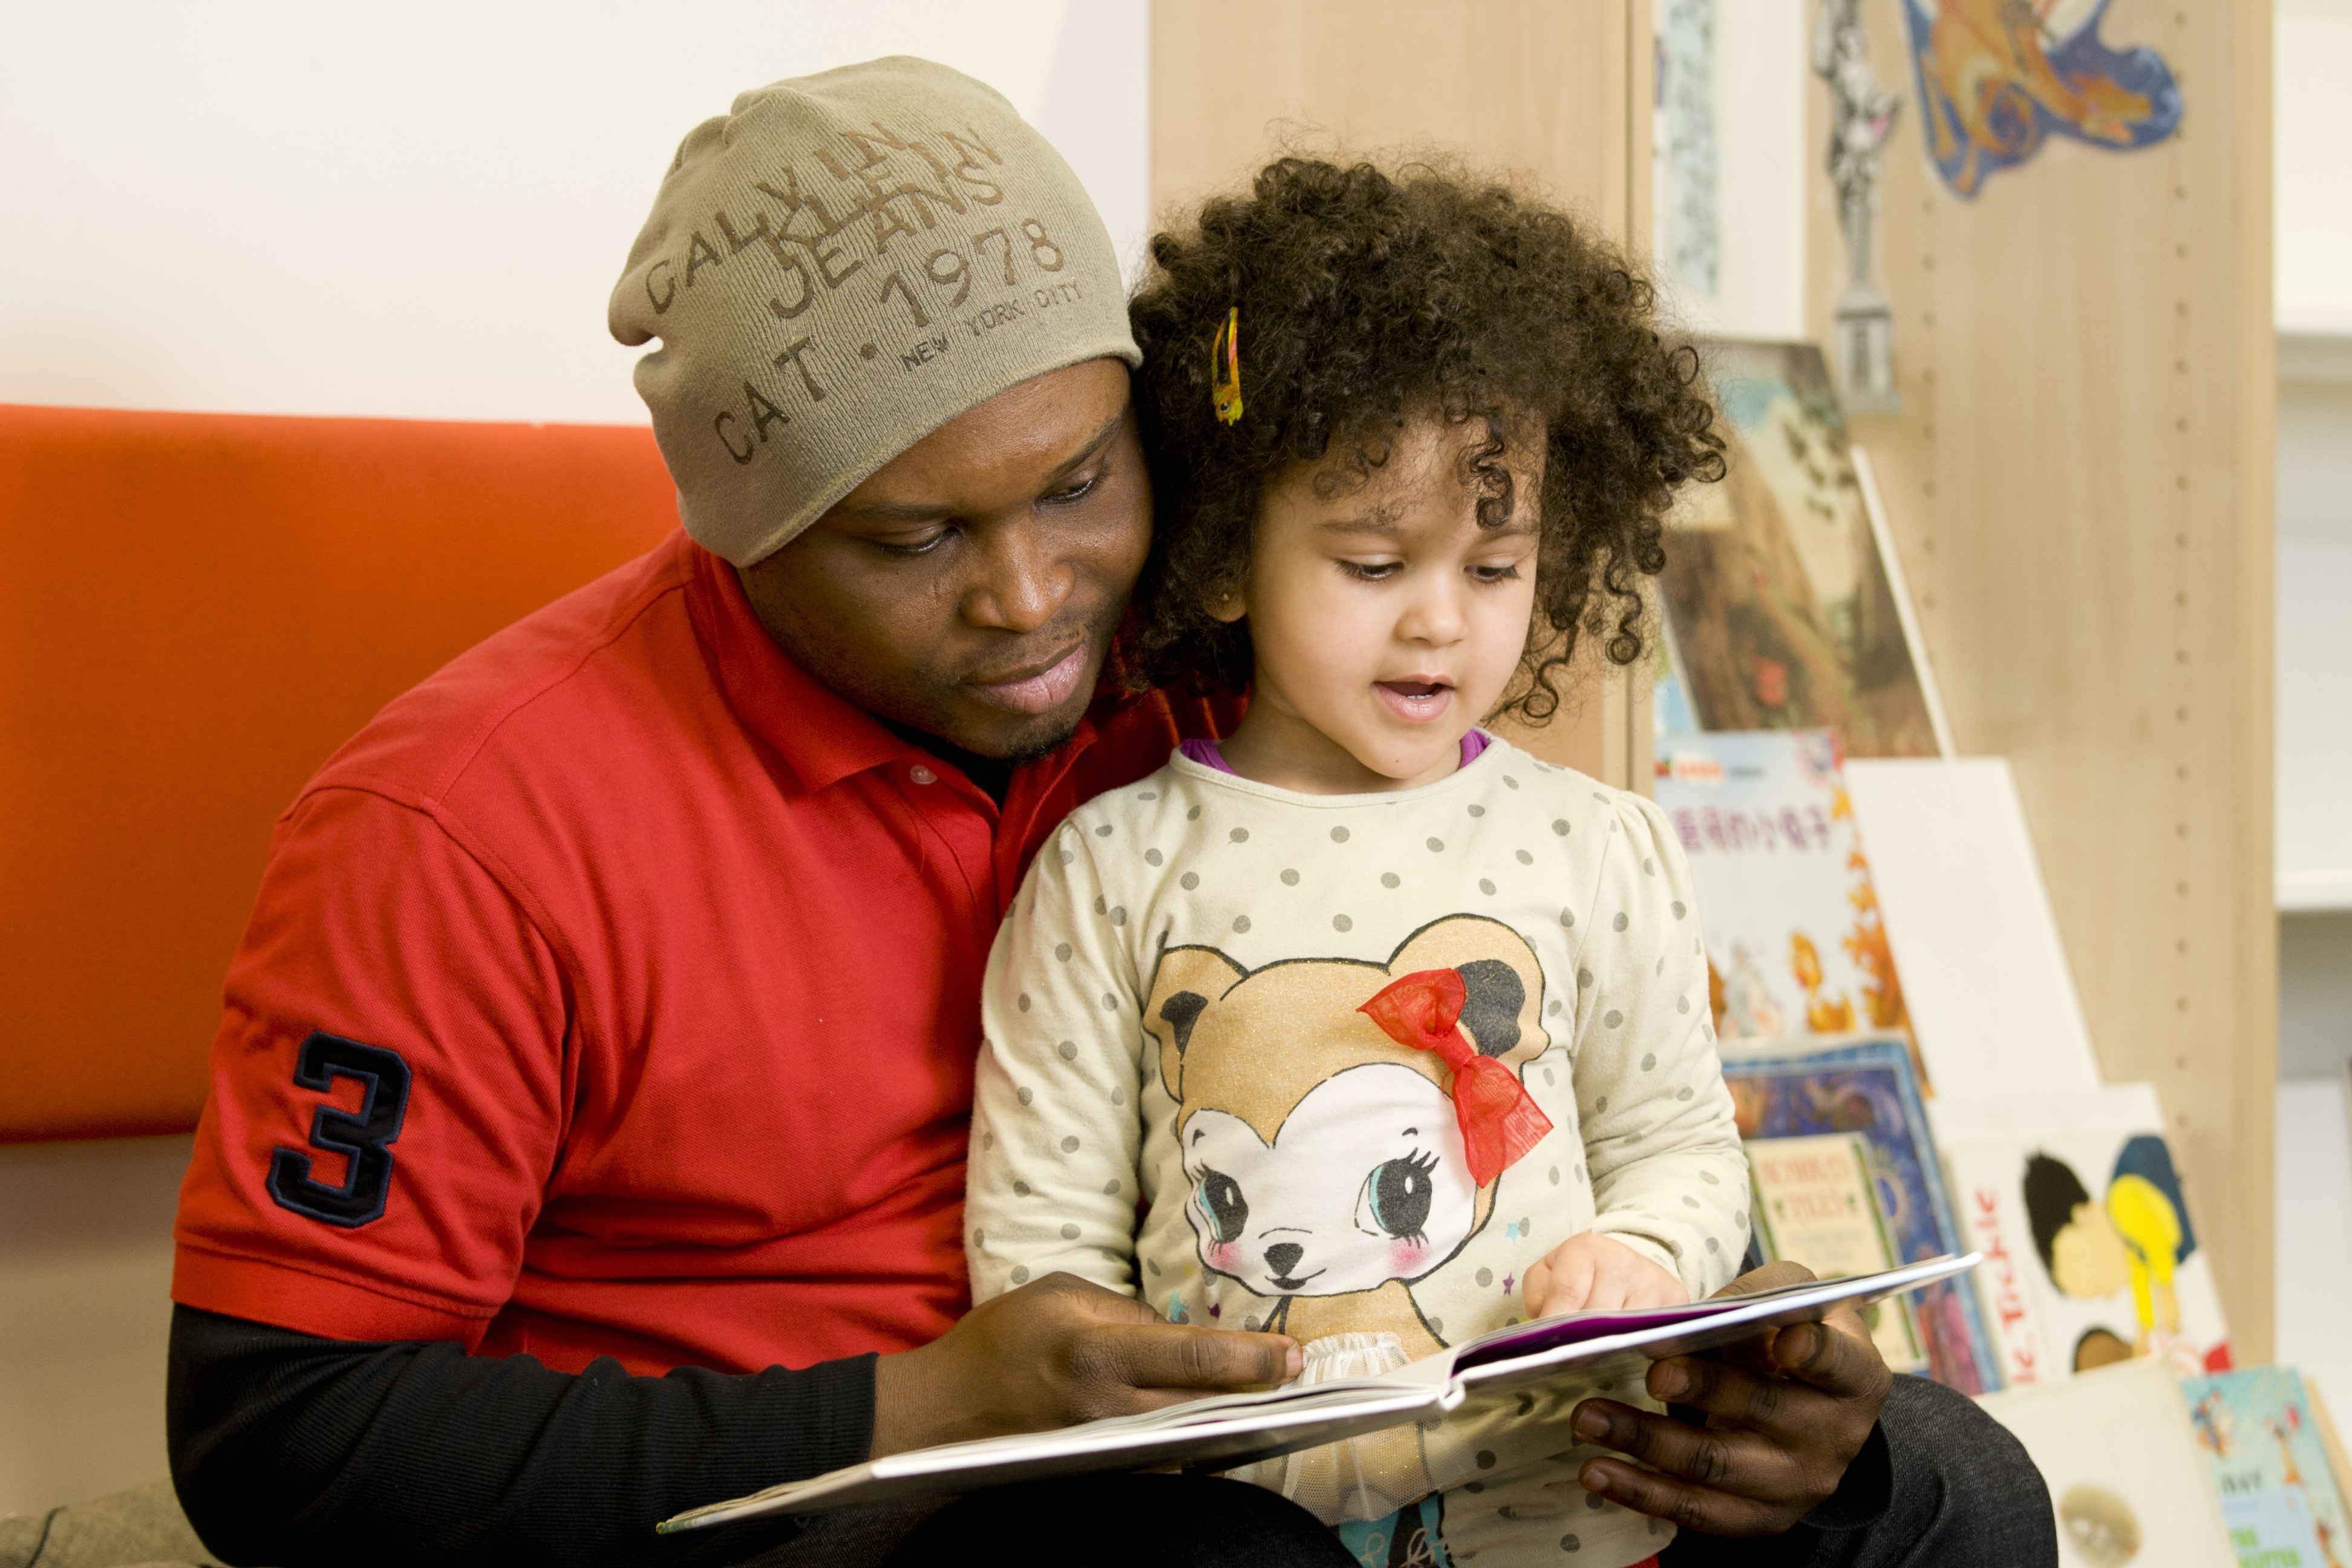 A young girl reads a storybook with a man.